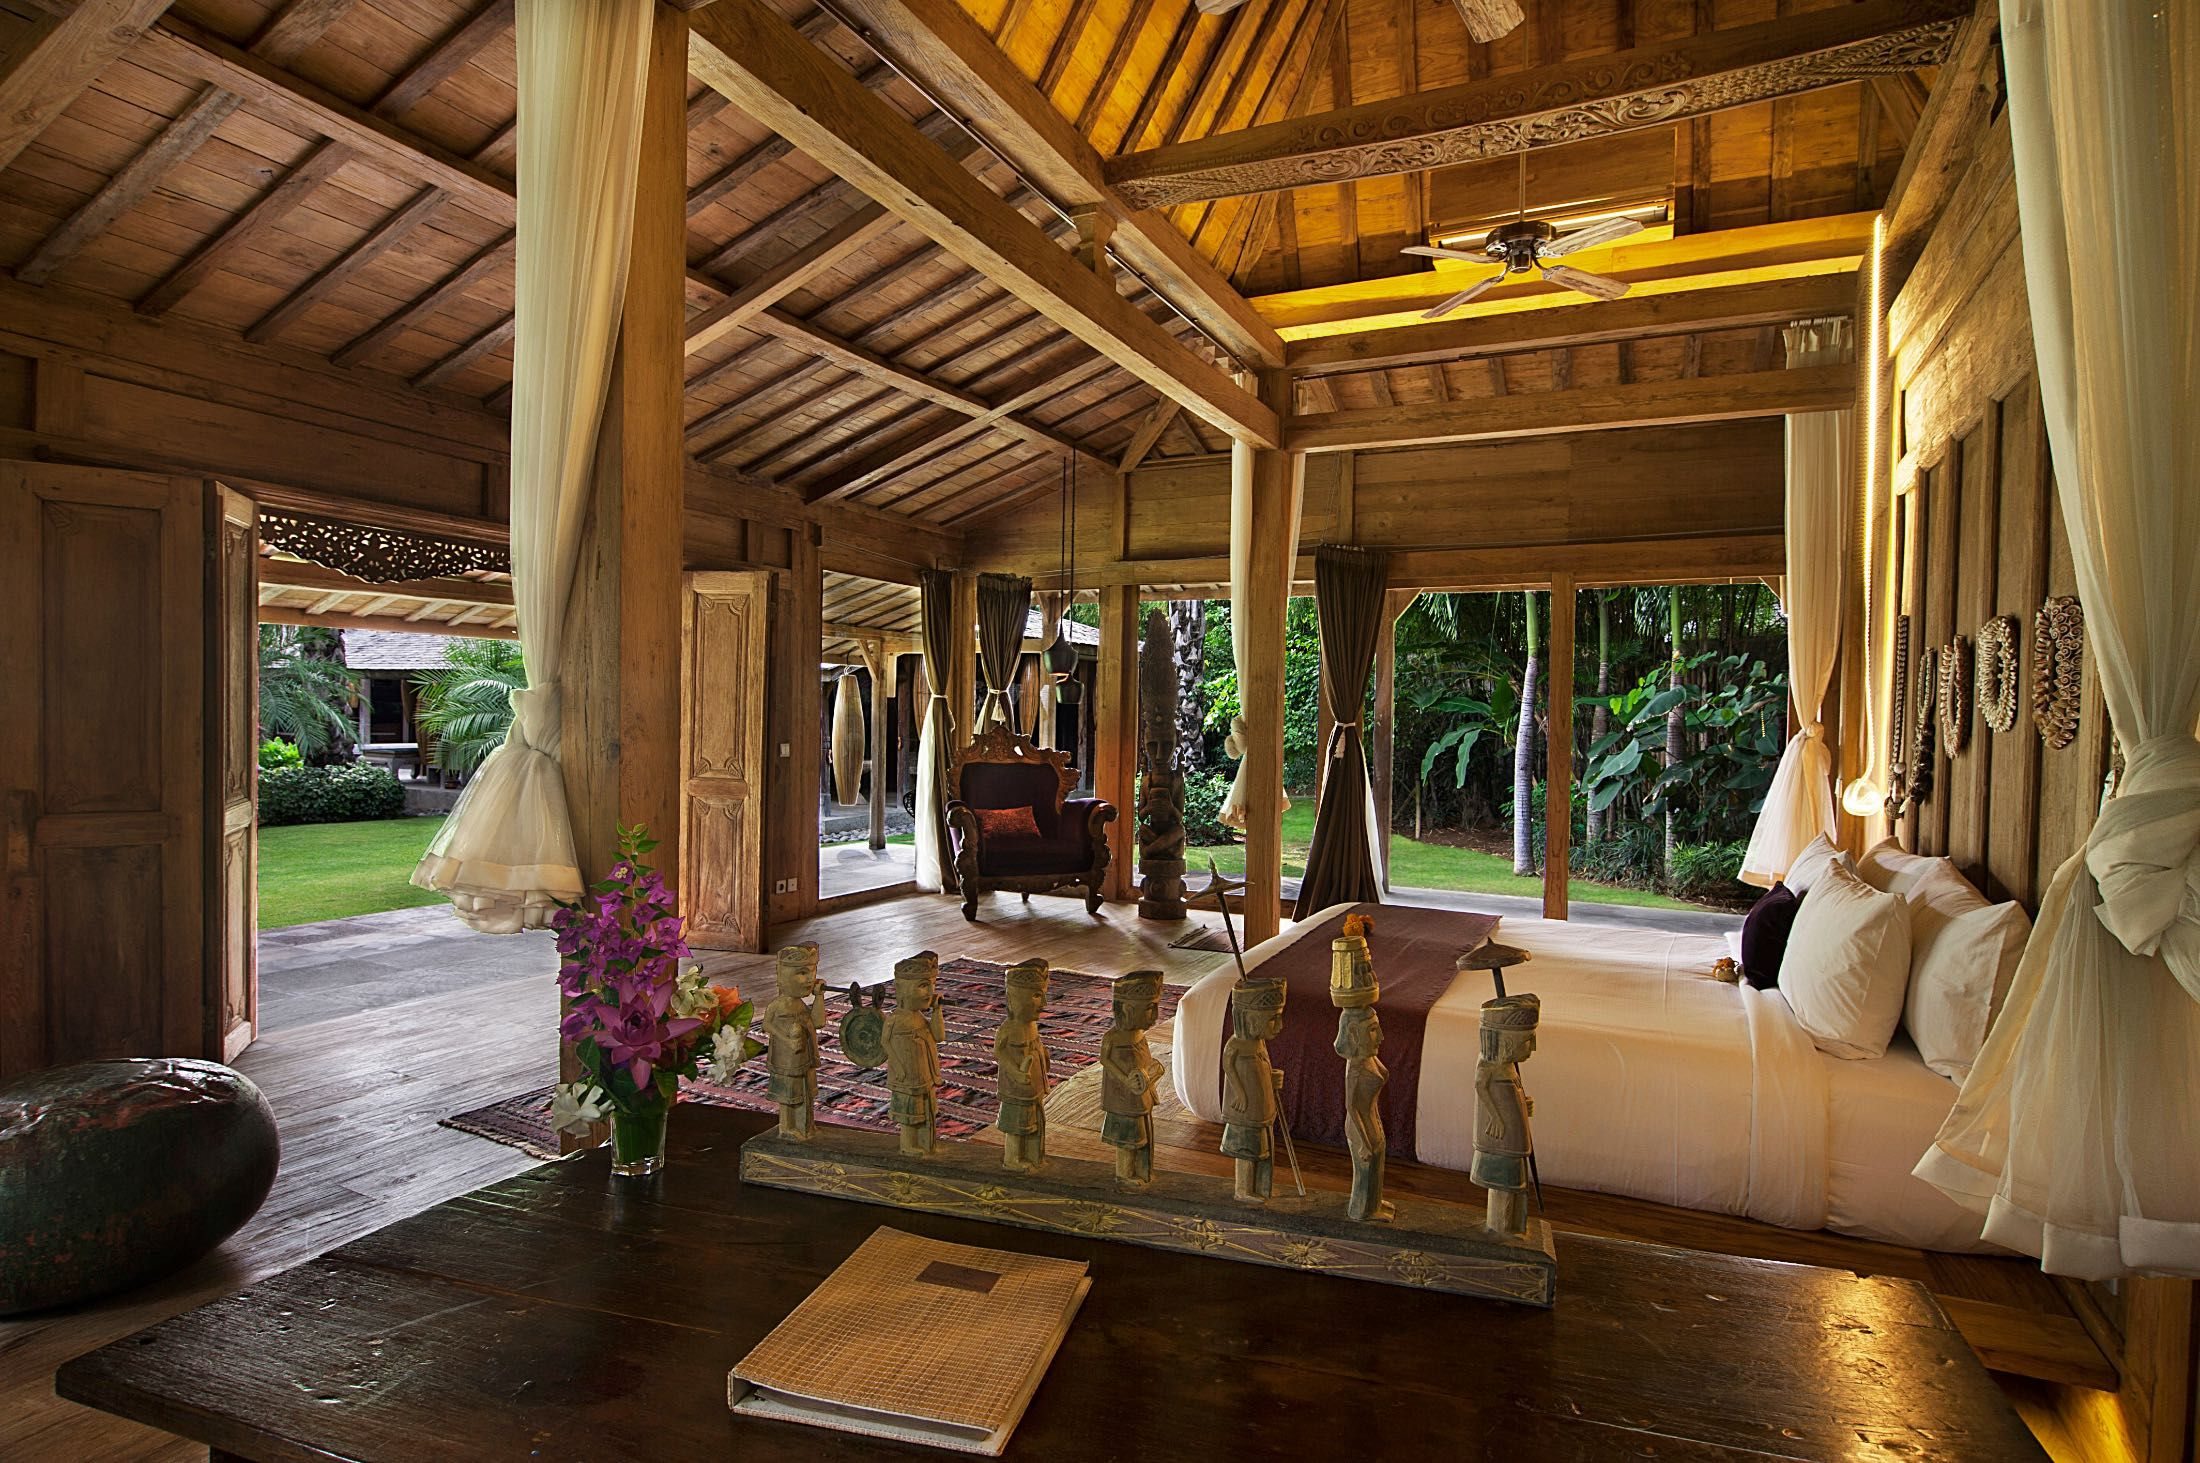 Image result for natural stone kitchen design balinese